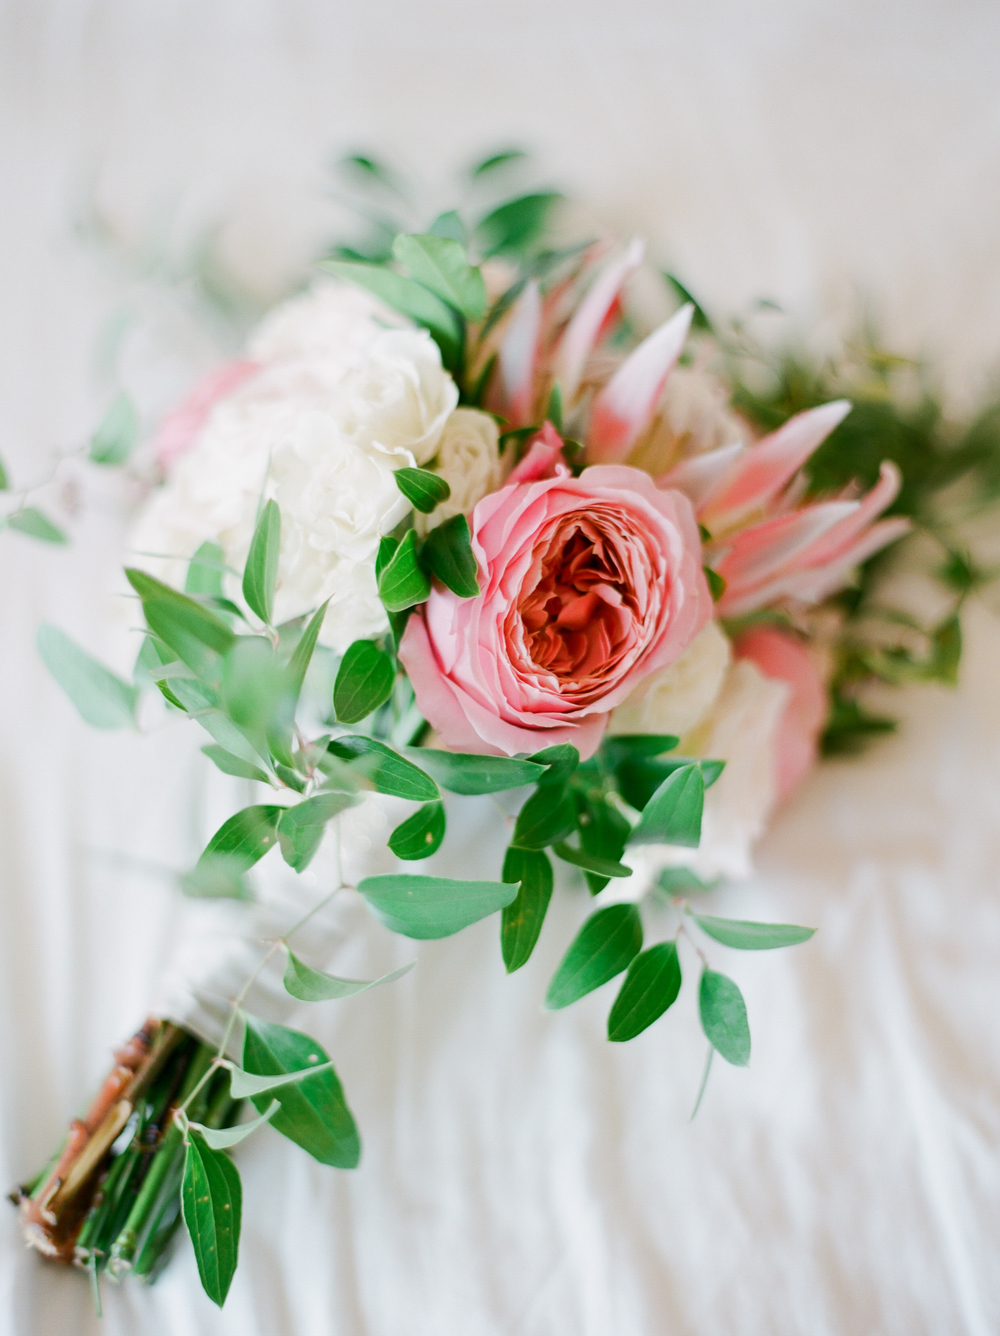 garden rose wedding bouquet | Kaylie B. Poplin Photography | 30a fine art wedding photographer